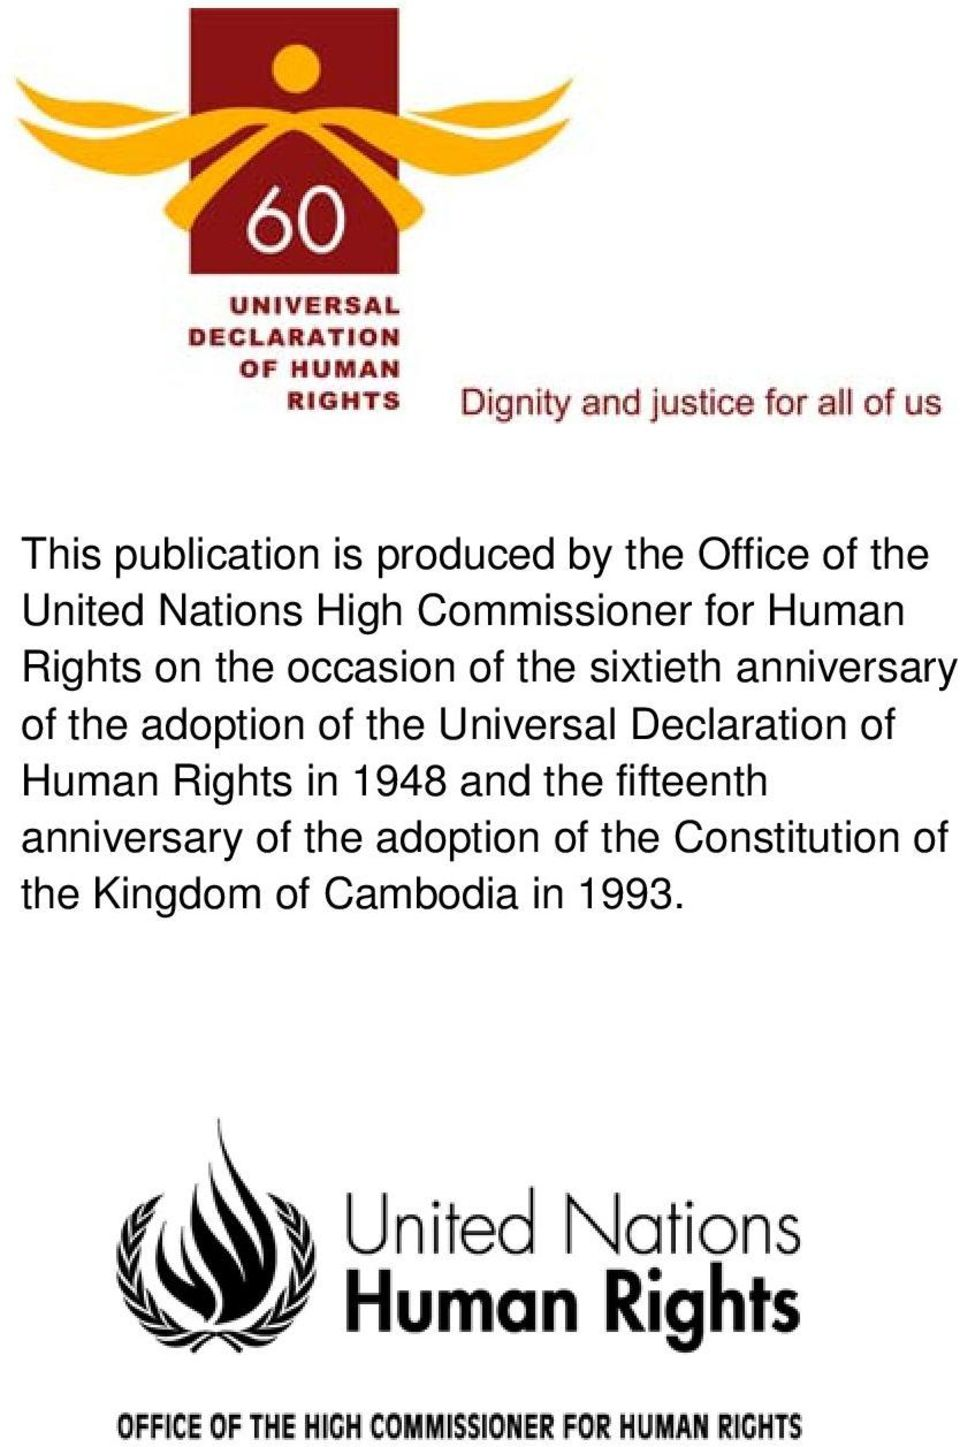 the adoption of the Universal Declaration of Human Rights in 1948 and the